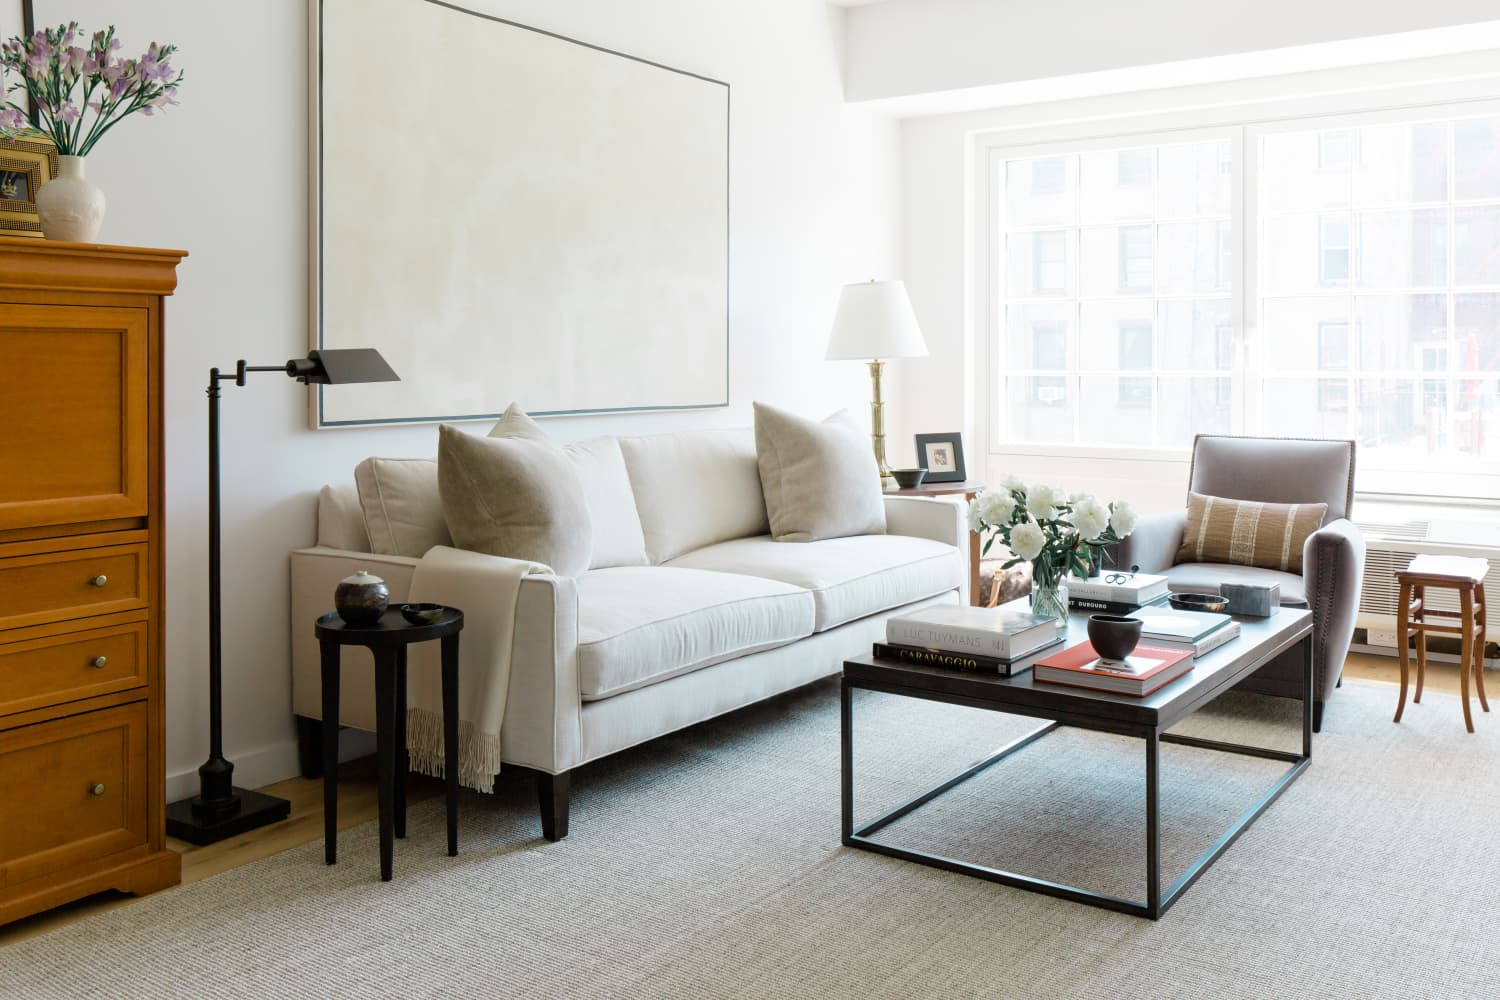 A 600-Square-Foot NYC Rental Shows How to Get a High-End Look on a Low-End Budget